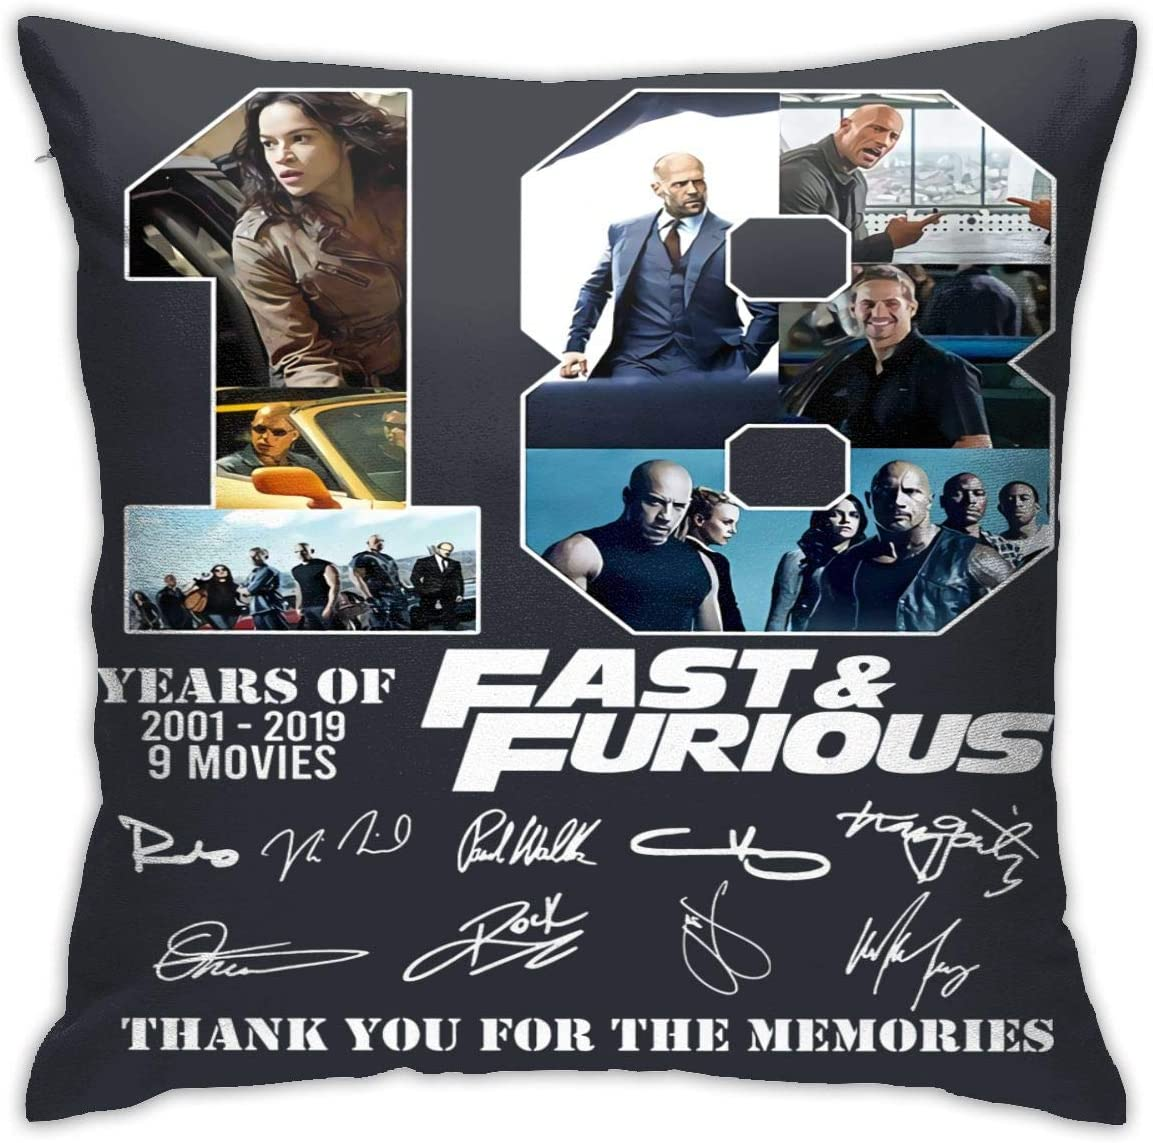 HUABDWA Years of Fast & Furious Pillowcase Throw Pillow Covers 18 X 18 Inch/45 X 45 cm Double-Sided Printing